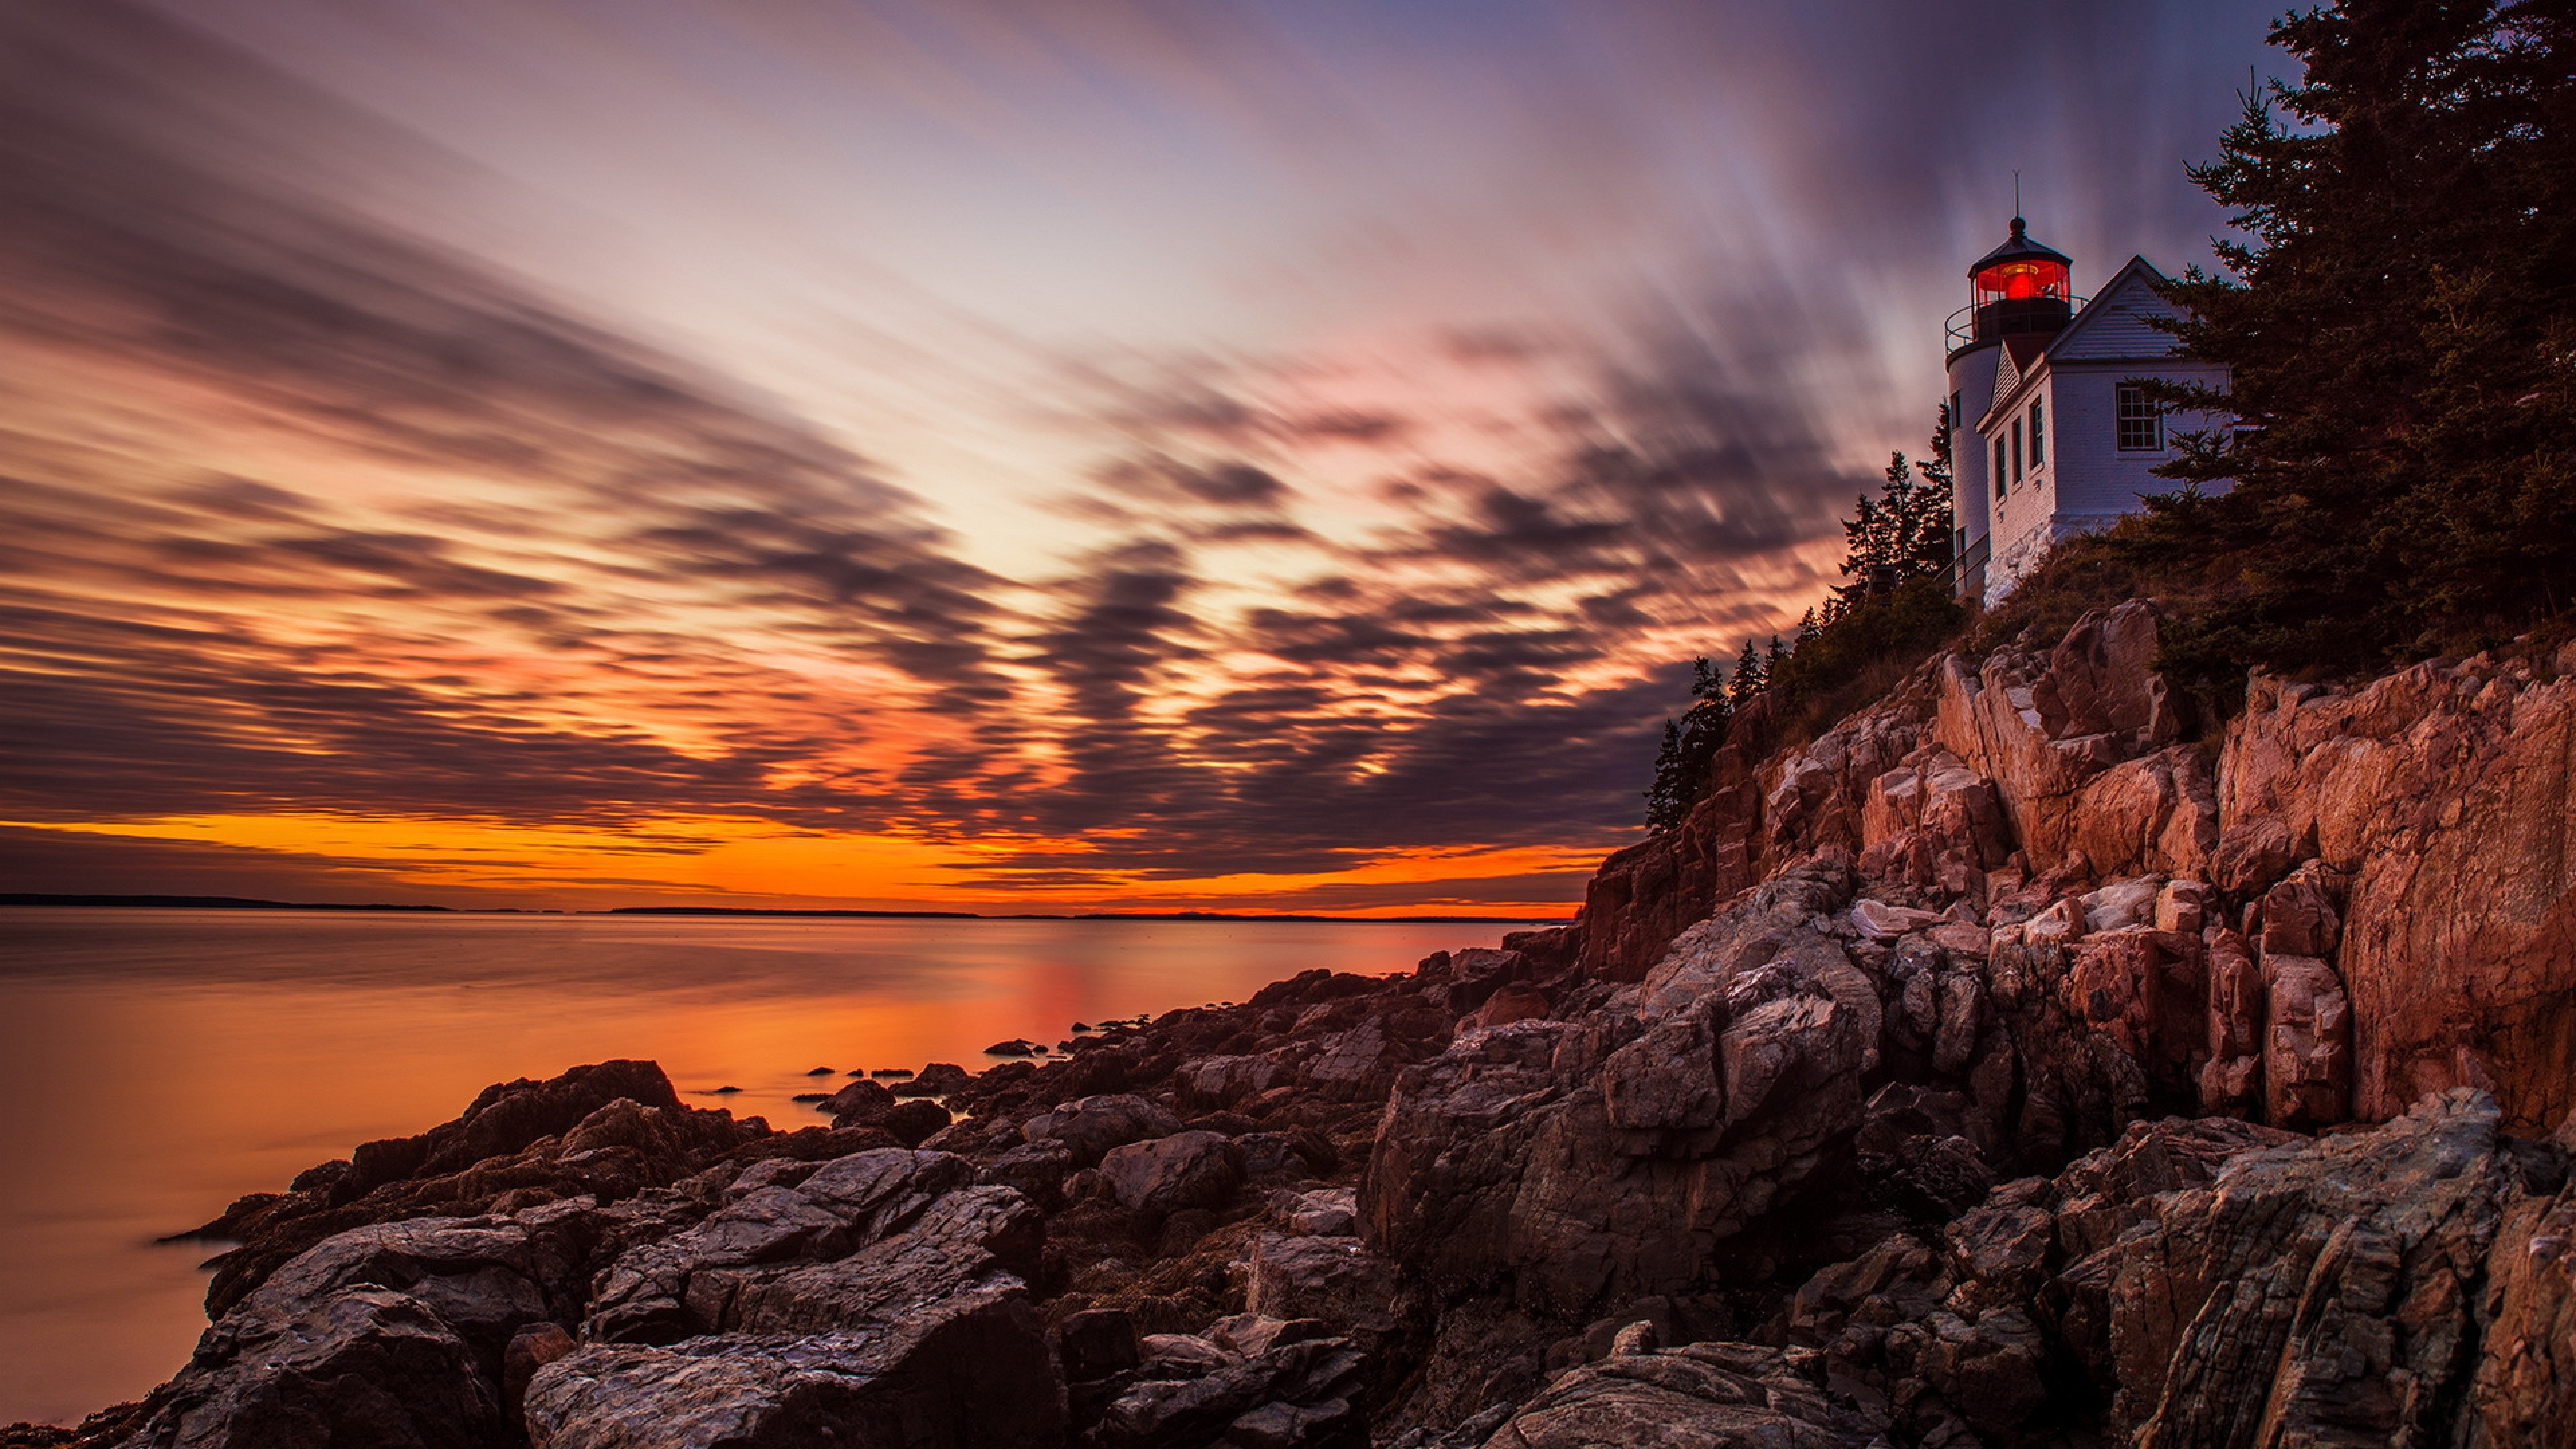 Lighthouse Sunset Wallpaper Full Hd Is Cool Wallpapers